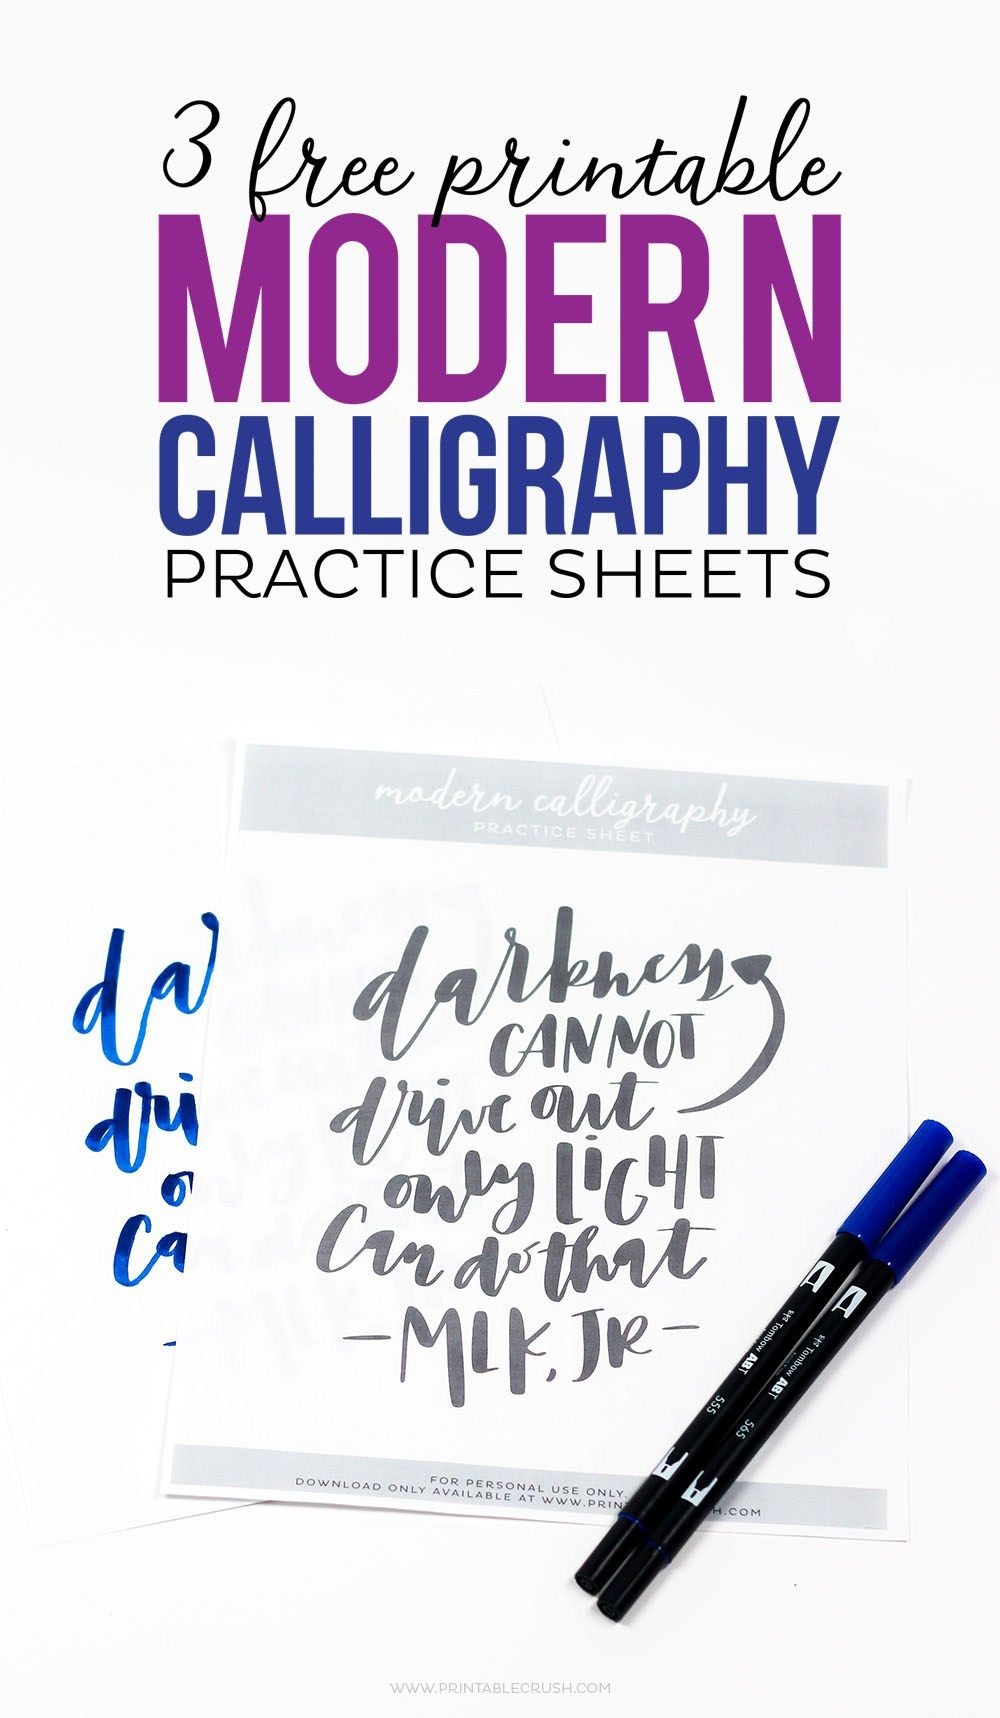 Download These 3 Free Printable Modern Calligraphy Practice Sheets - Calligraphy Practice Sheets Printable Free